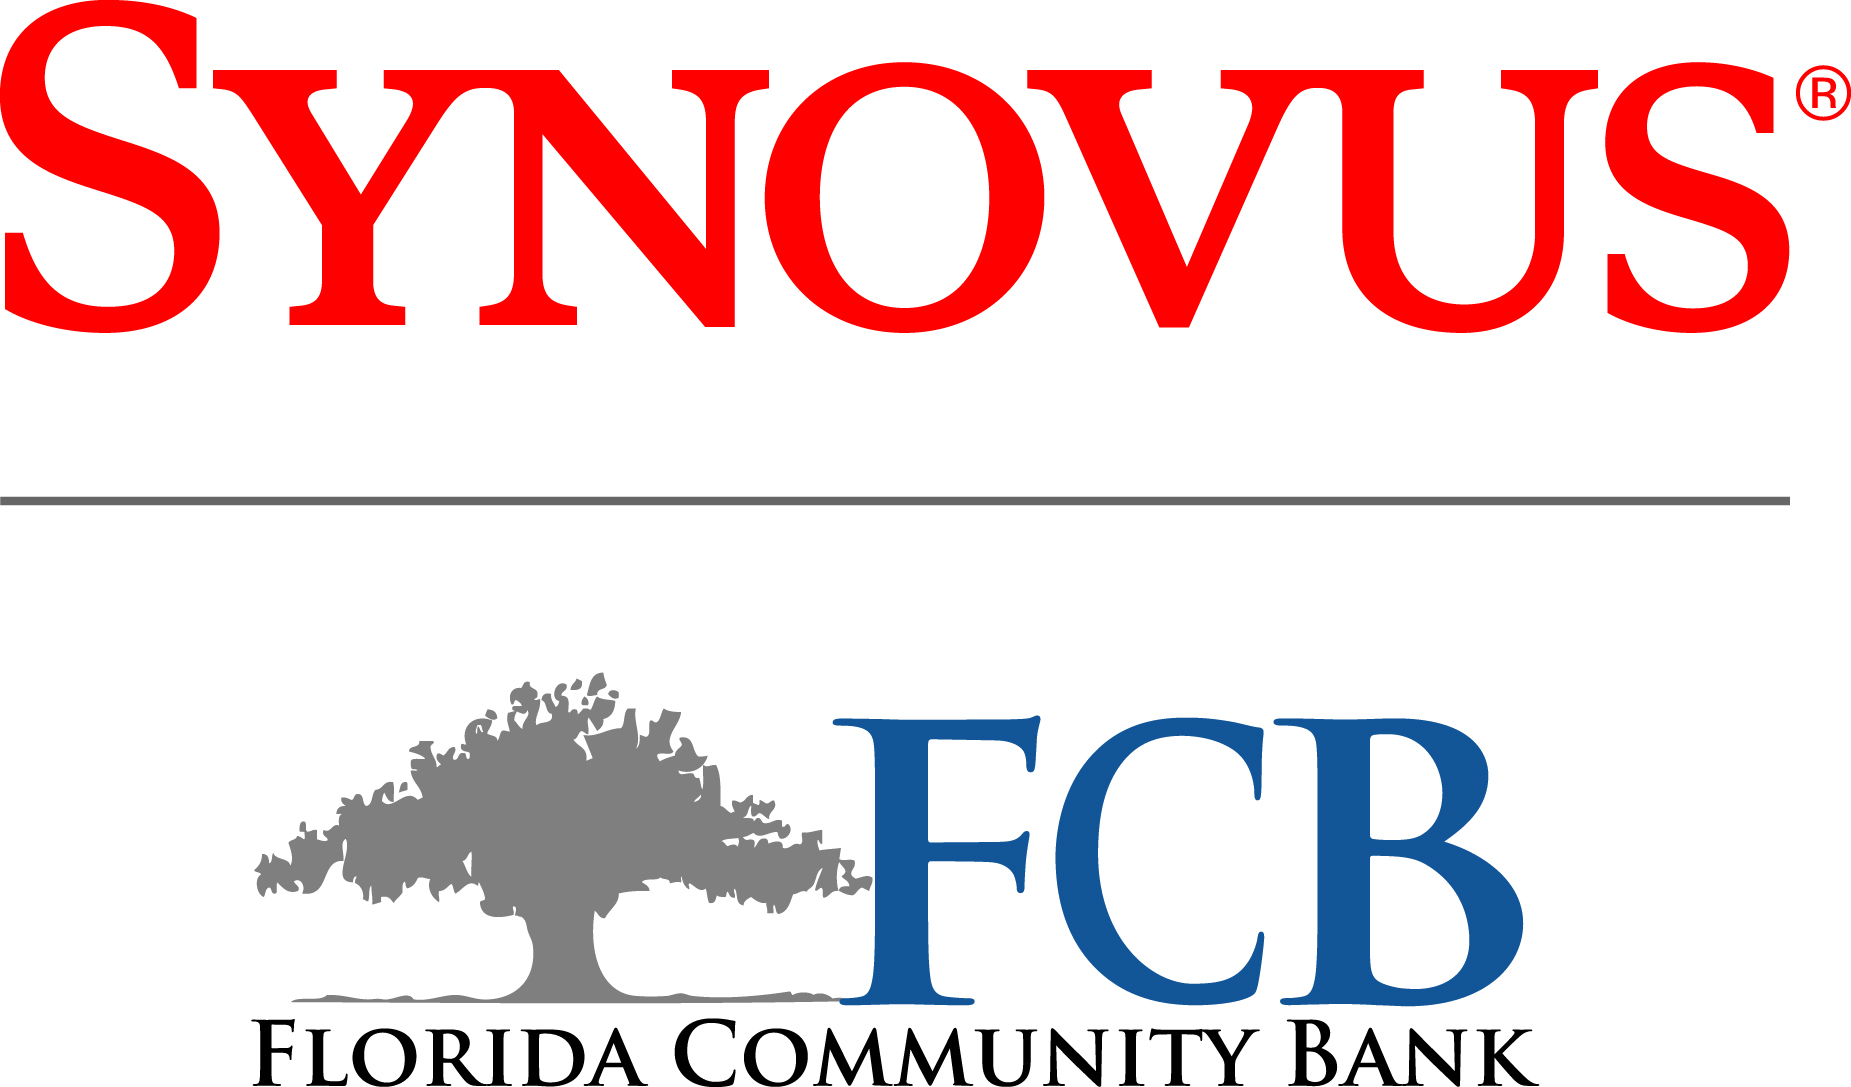 Florida Community Bank